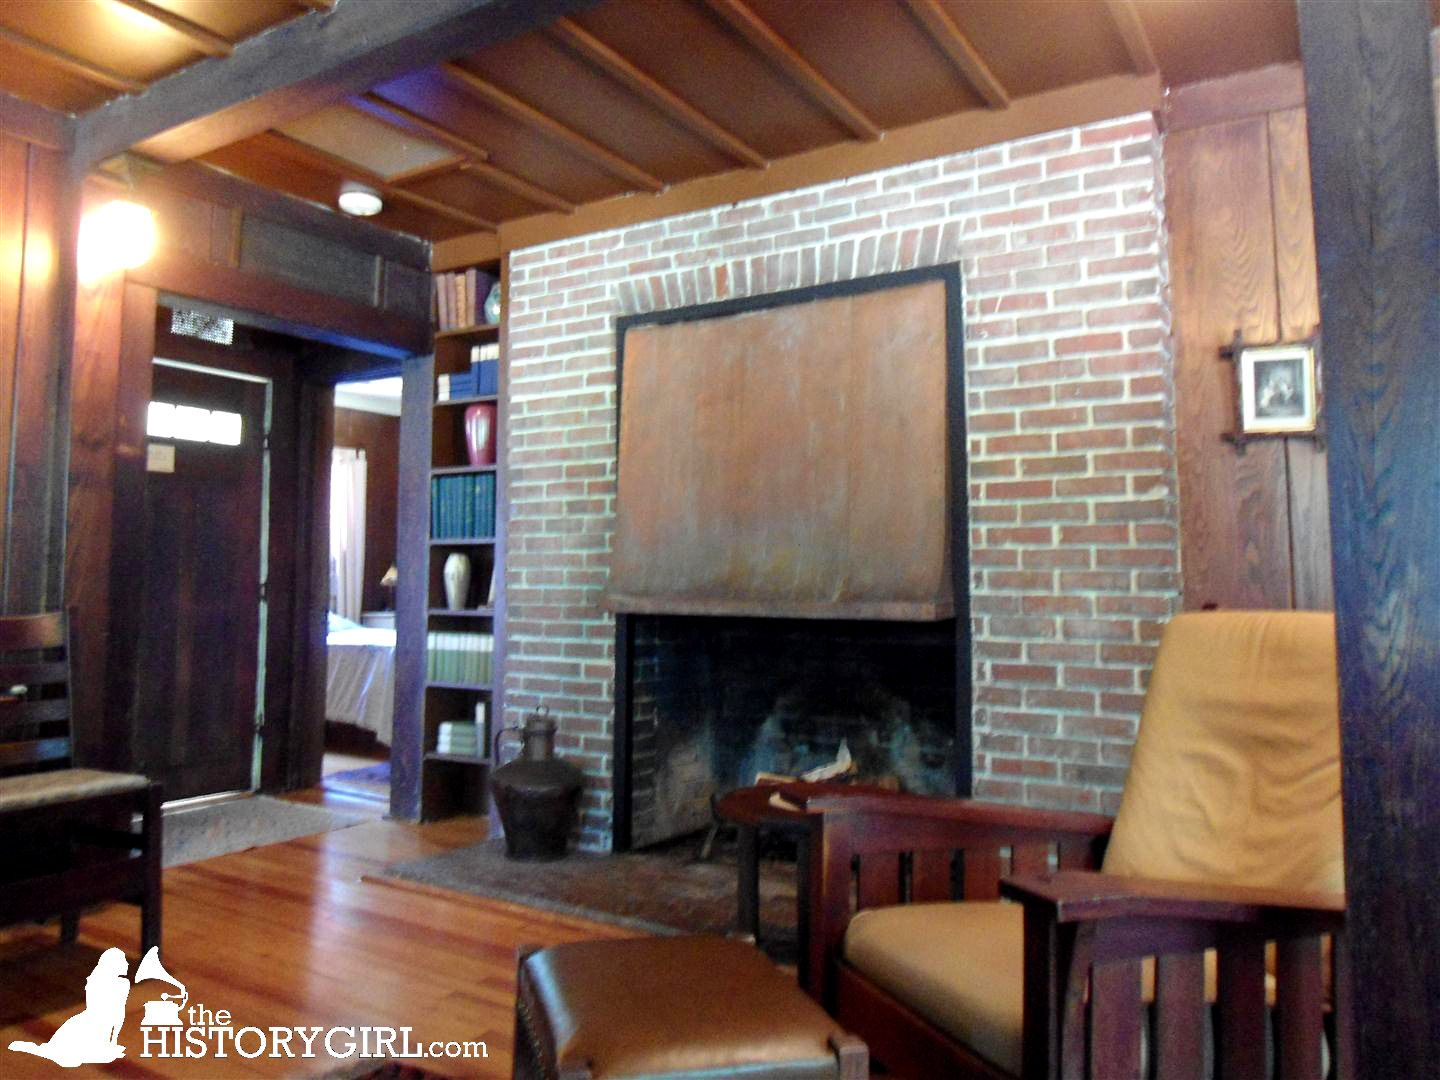 North Cottage interior. Craftsman Farms was founded in 1908 in Parsippany-Troy Hills, NJ, by noted early 20th century designer Gustav Stickley, as a farm and school for the Arts and Crafts movement. He built an iconic log cabin in 1911 that became his home. The farm remained until 1915 when it was sold to a family and became a private residence. When threatened with demolition in 1989, the property was purchased by the town to become a museum site. Discover more history…